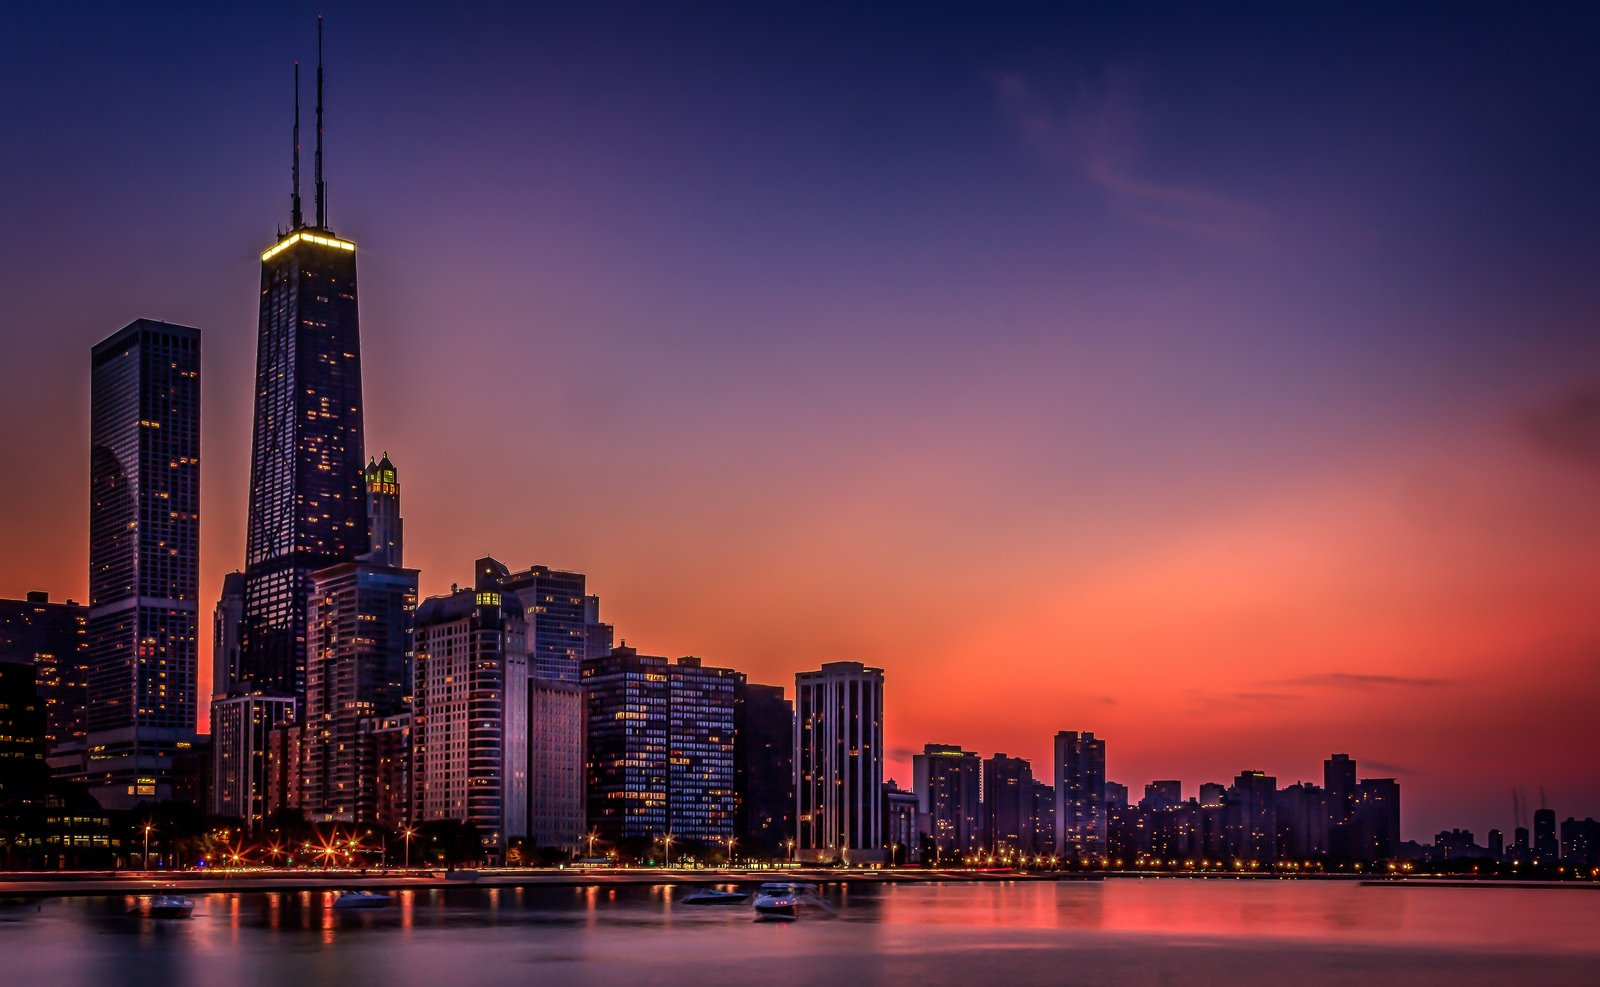 Chicago At Night Wallpaper: Architecture Bridges Chicago Cities City Francisco Night